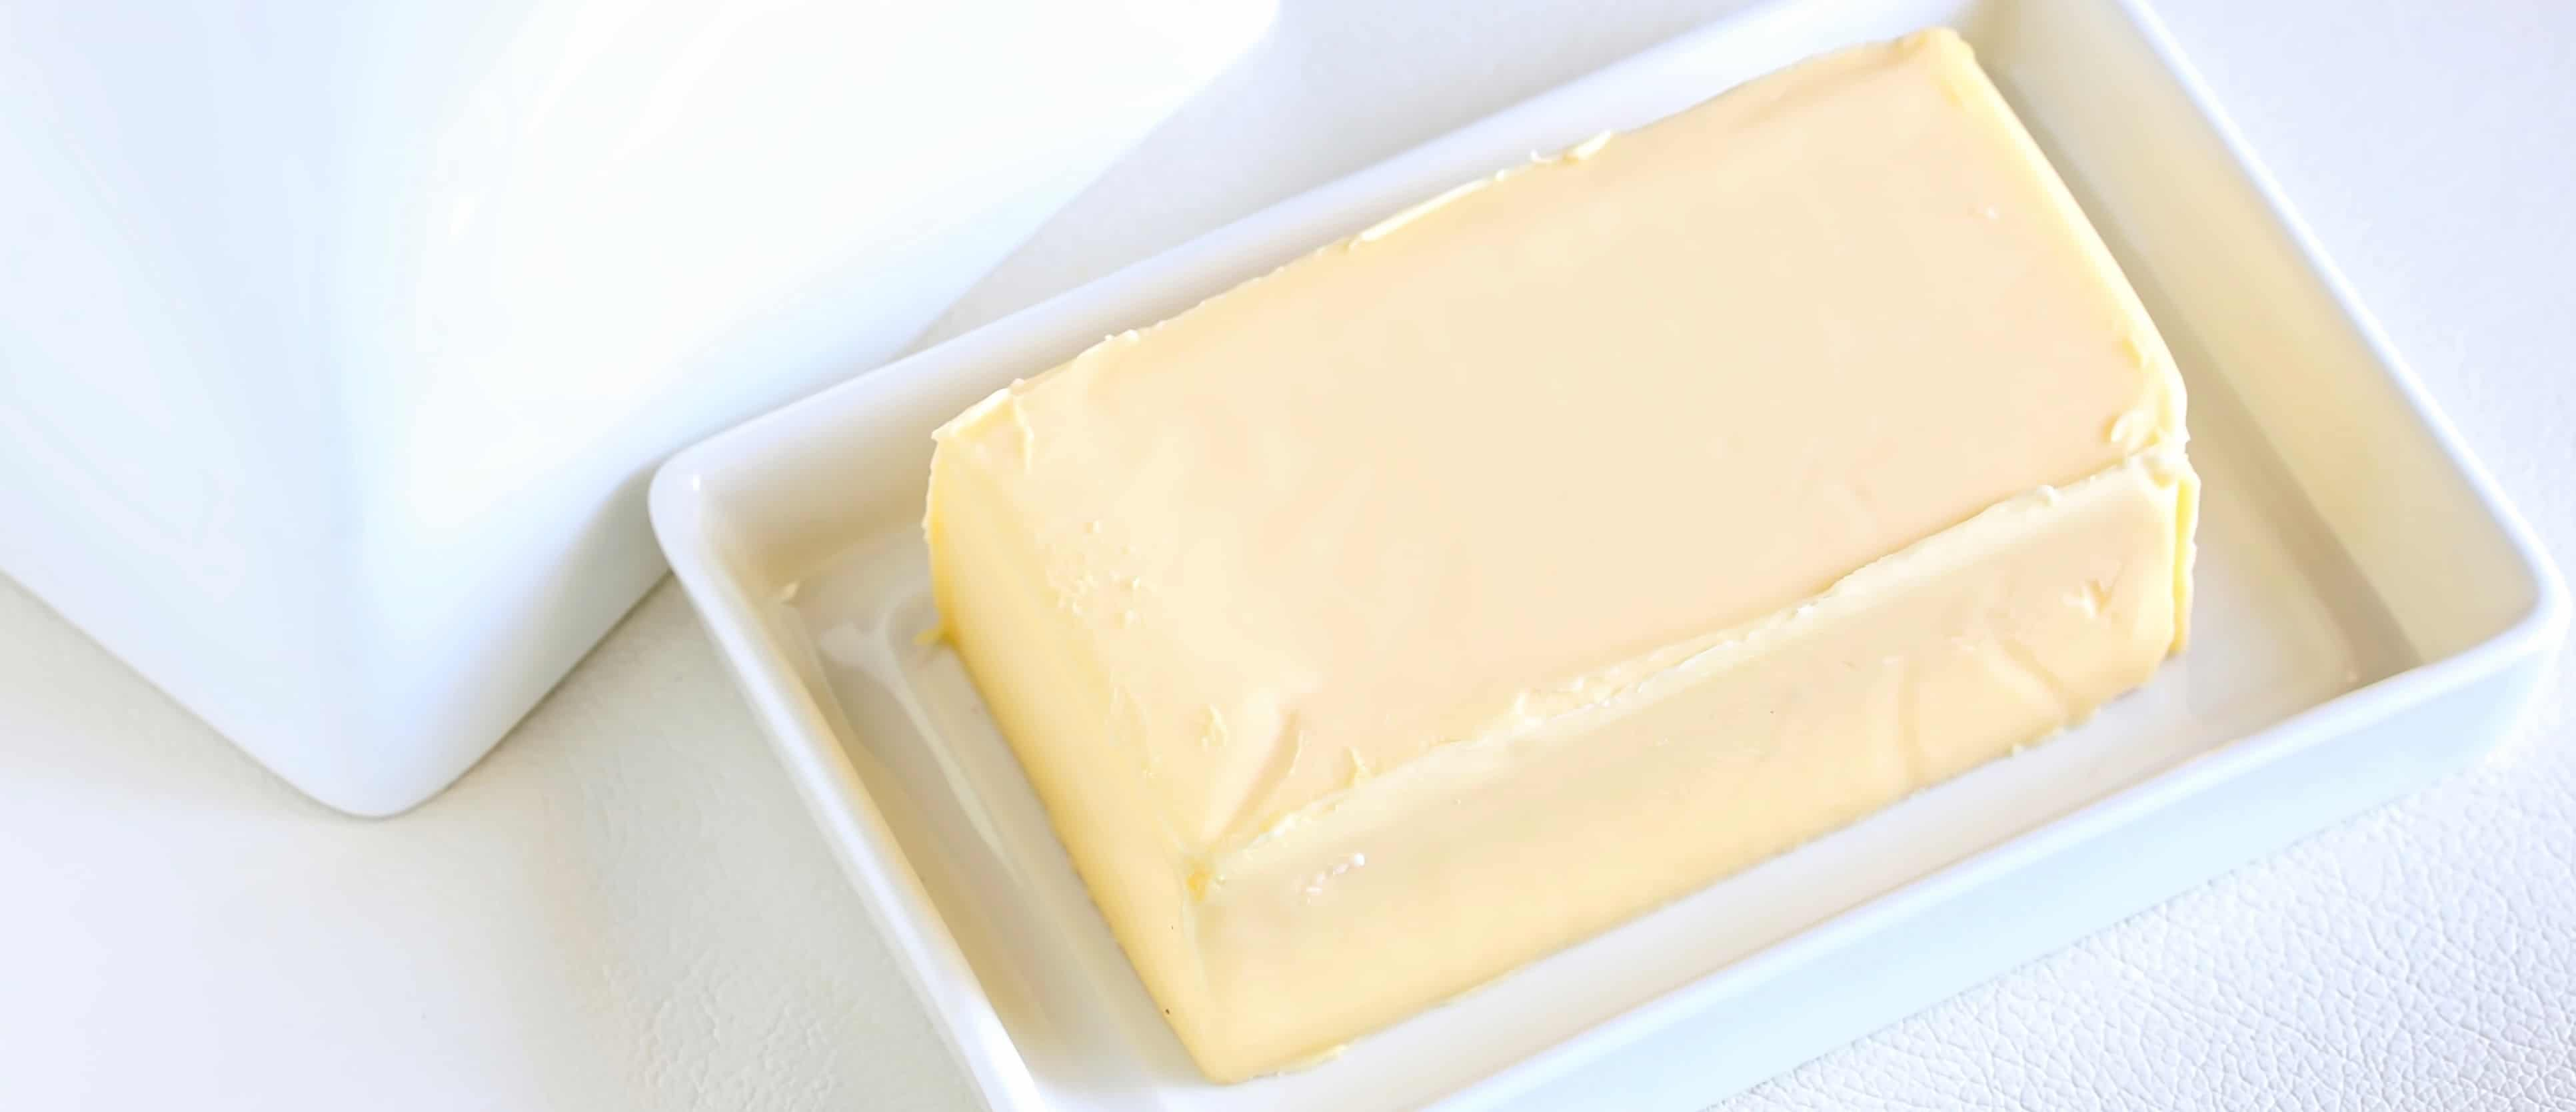 Will Leaving Butter on the Counter Make You Sick? - BCLiving